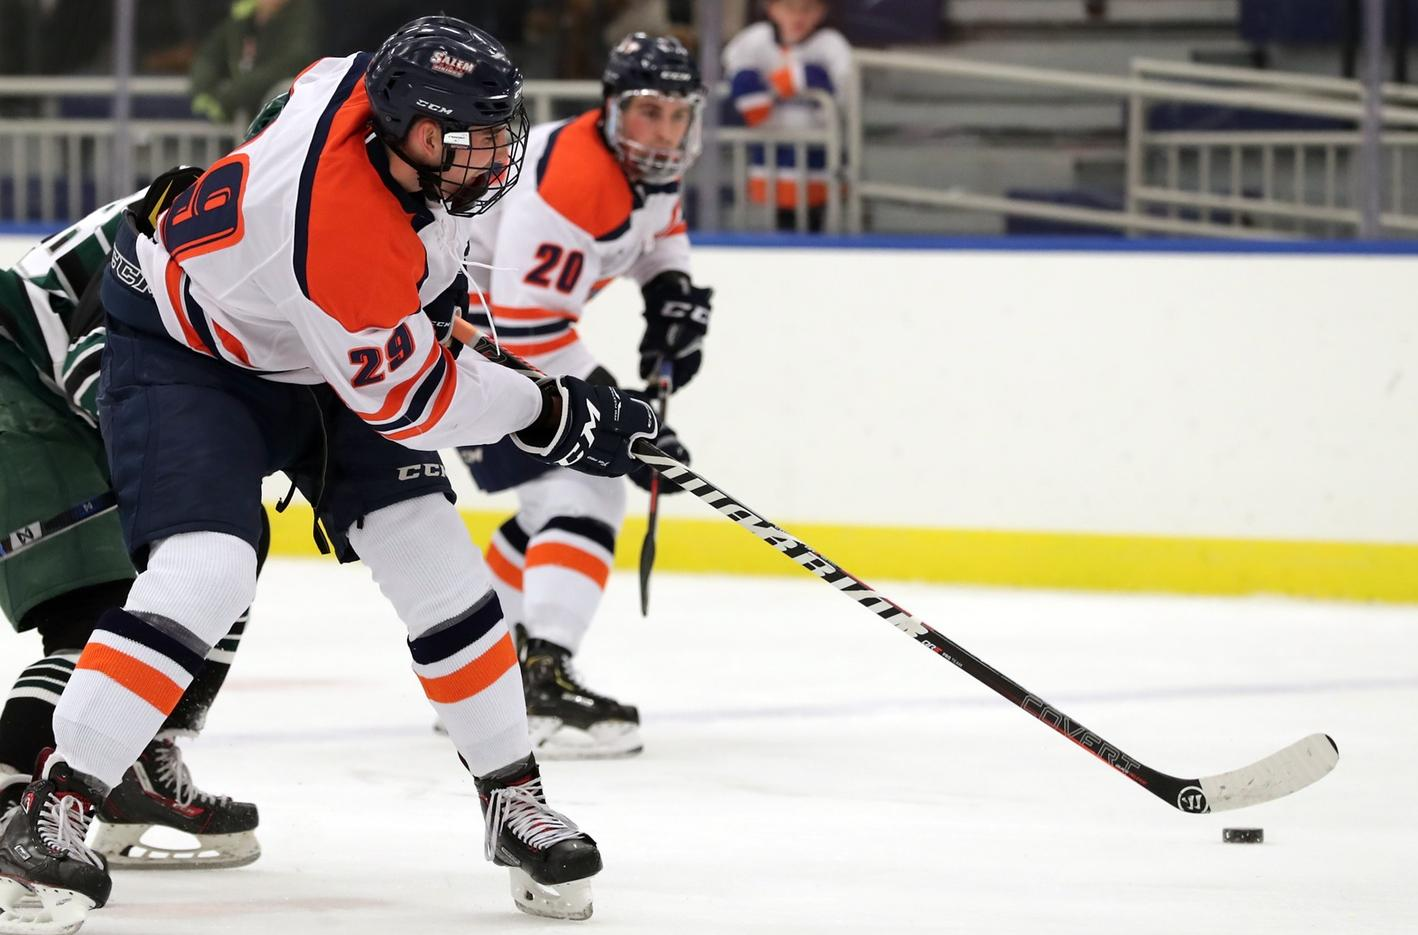 McGwin Scores Twice in Salem State's 3-2 Victory